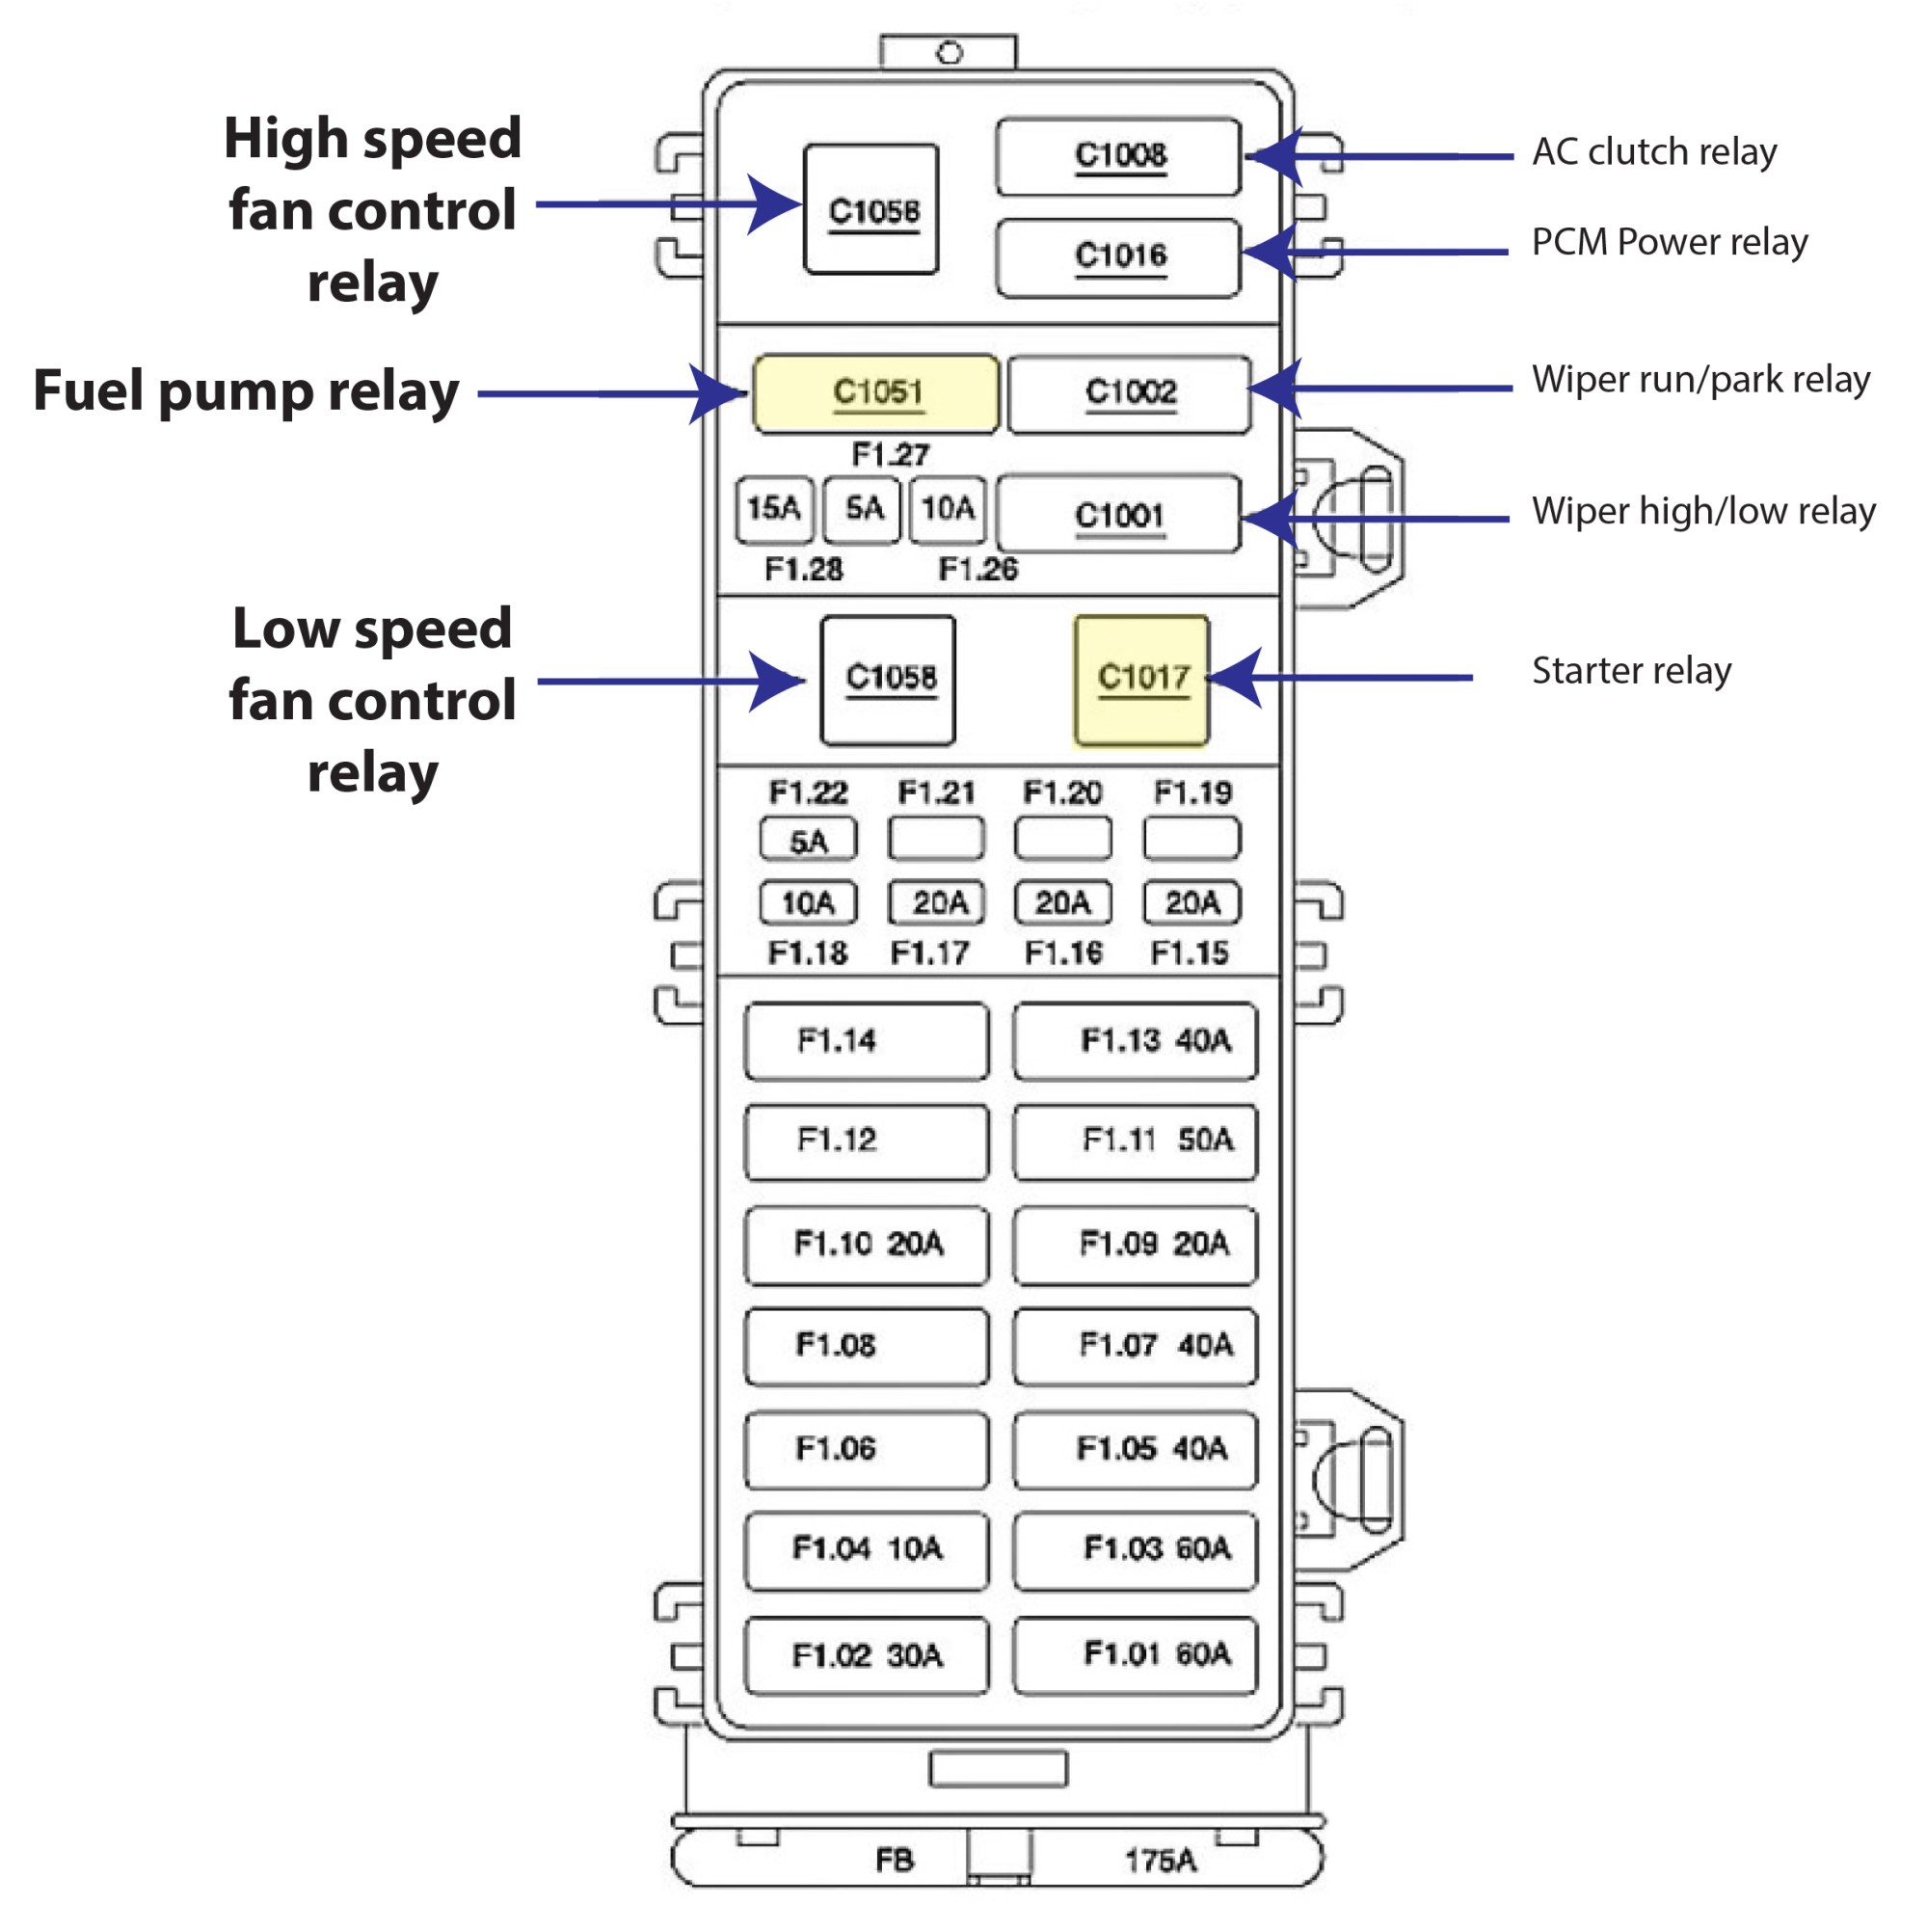 hight resolution of 2006 ford taurus fuse panel diagram wiring diagram fascinating 1998 ford taurus fuse box panel diagram